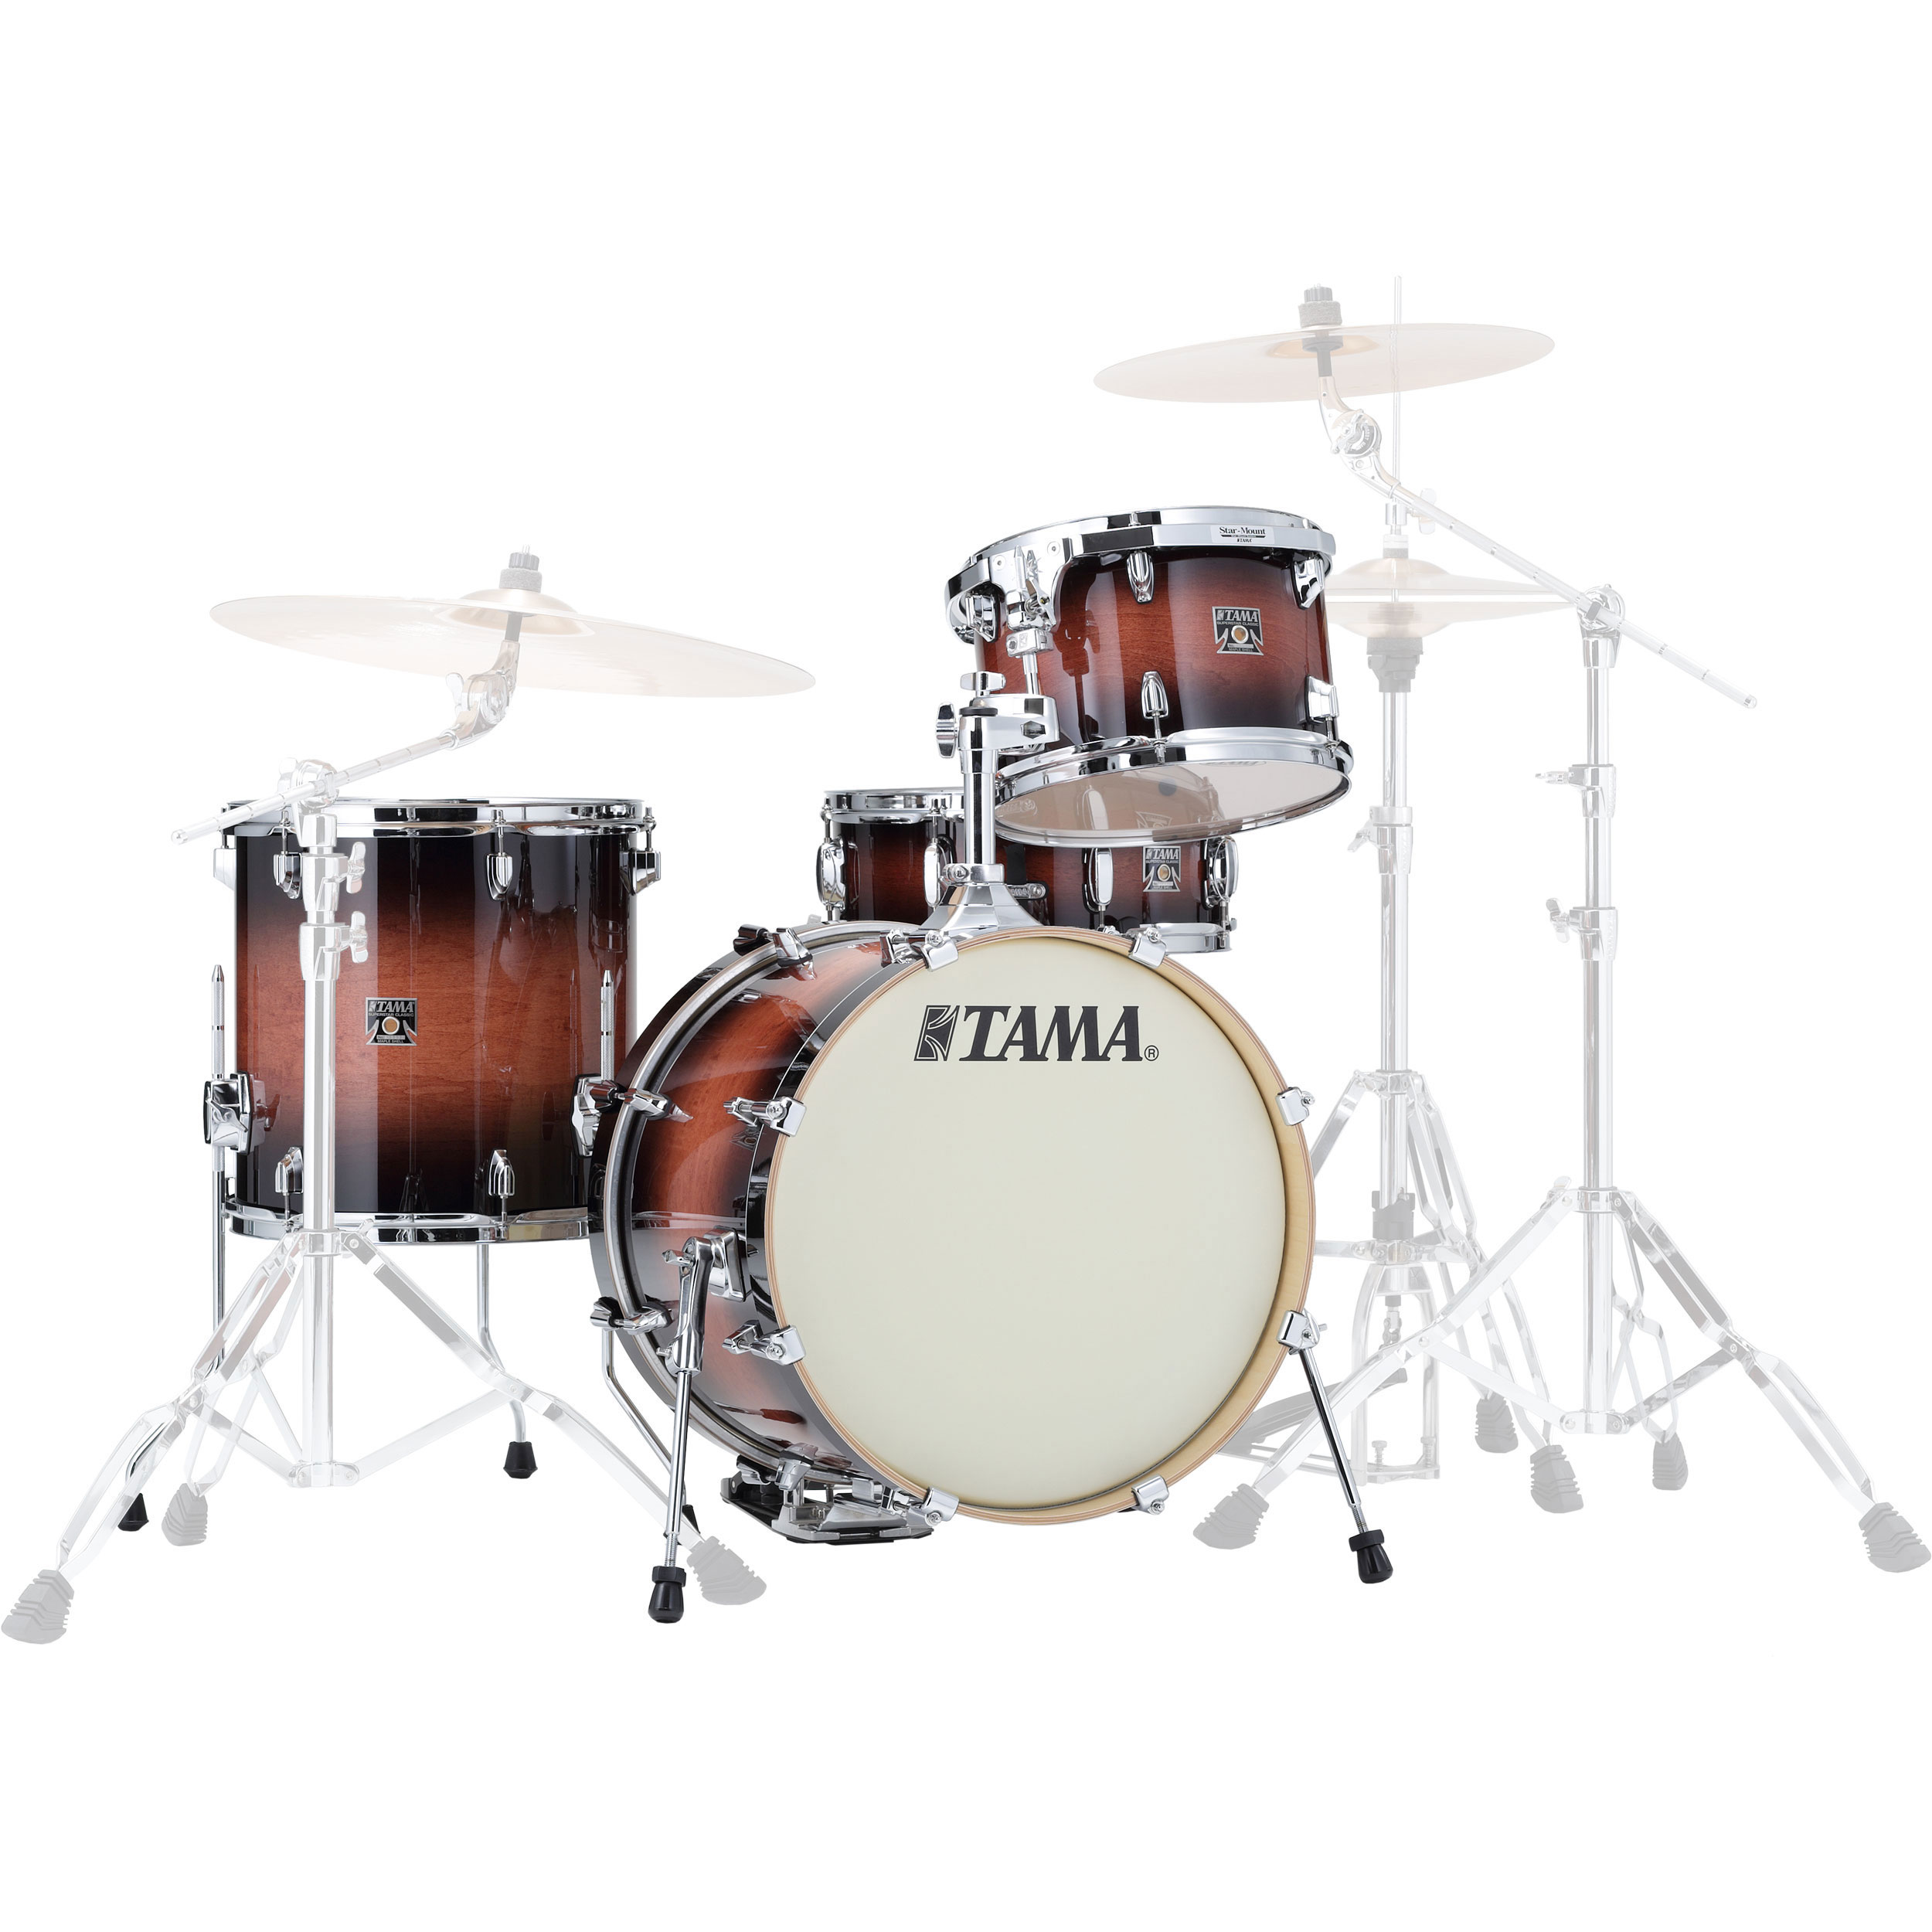 """Tama Superstar Classic """"Jazz Kit"""" 4-Piece Drum Set Shell Pack (18"""" Bass, 12/14"""" Toms, 14"""" Snare) in Lacquer Finish"""